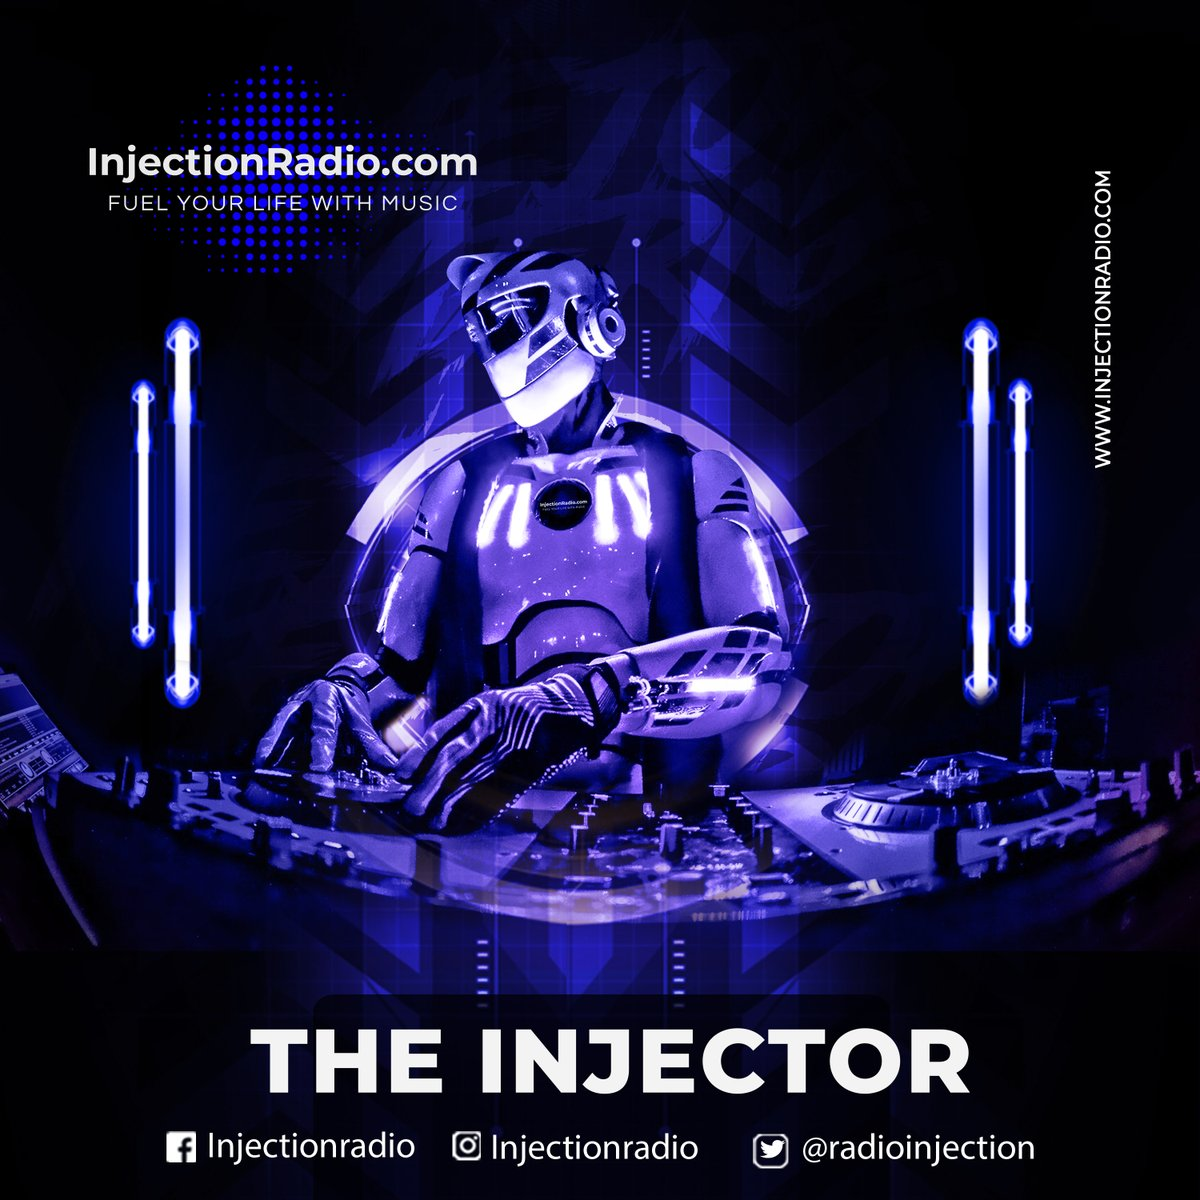 Remember! We currently have no Live DJ's during the day! But THE INJECTOR is here to keep you partying strong! Tune in now at http://www.injectionradio.com #party #partyatwork #partytime #grabthespeaker #liveradio #robotpic.twitter.com/W0fANxBU2e